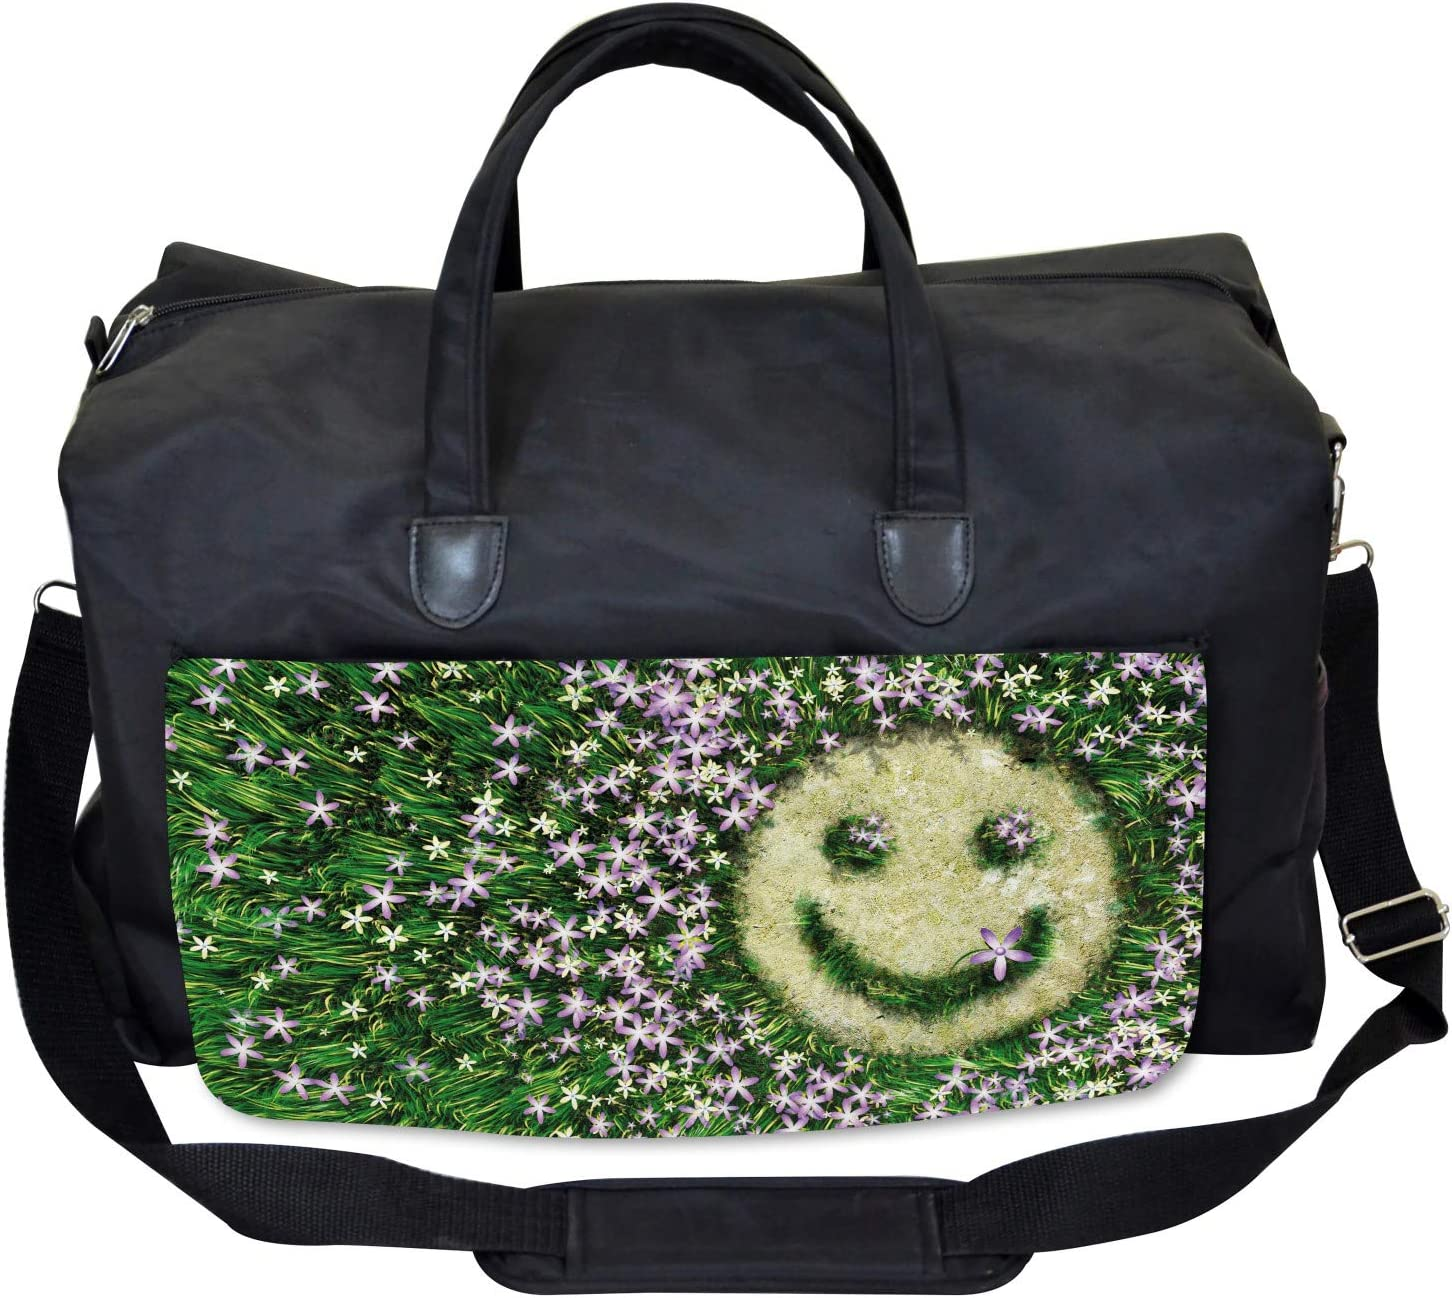 Smiling Emoticon on Grass Large Weekender Carry-on Ambesonne Garden Gym Bag